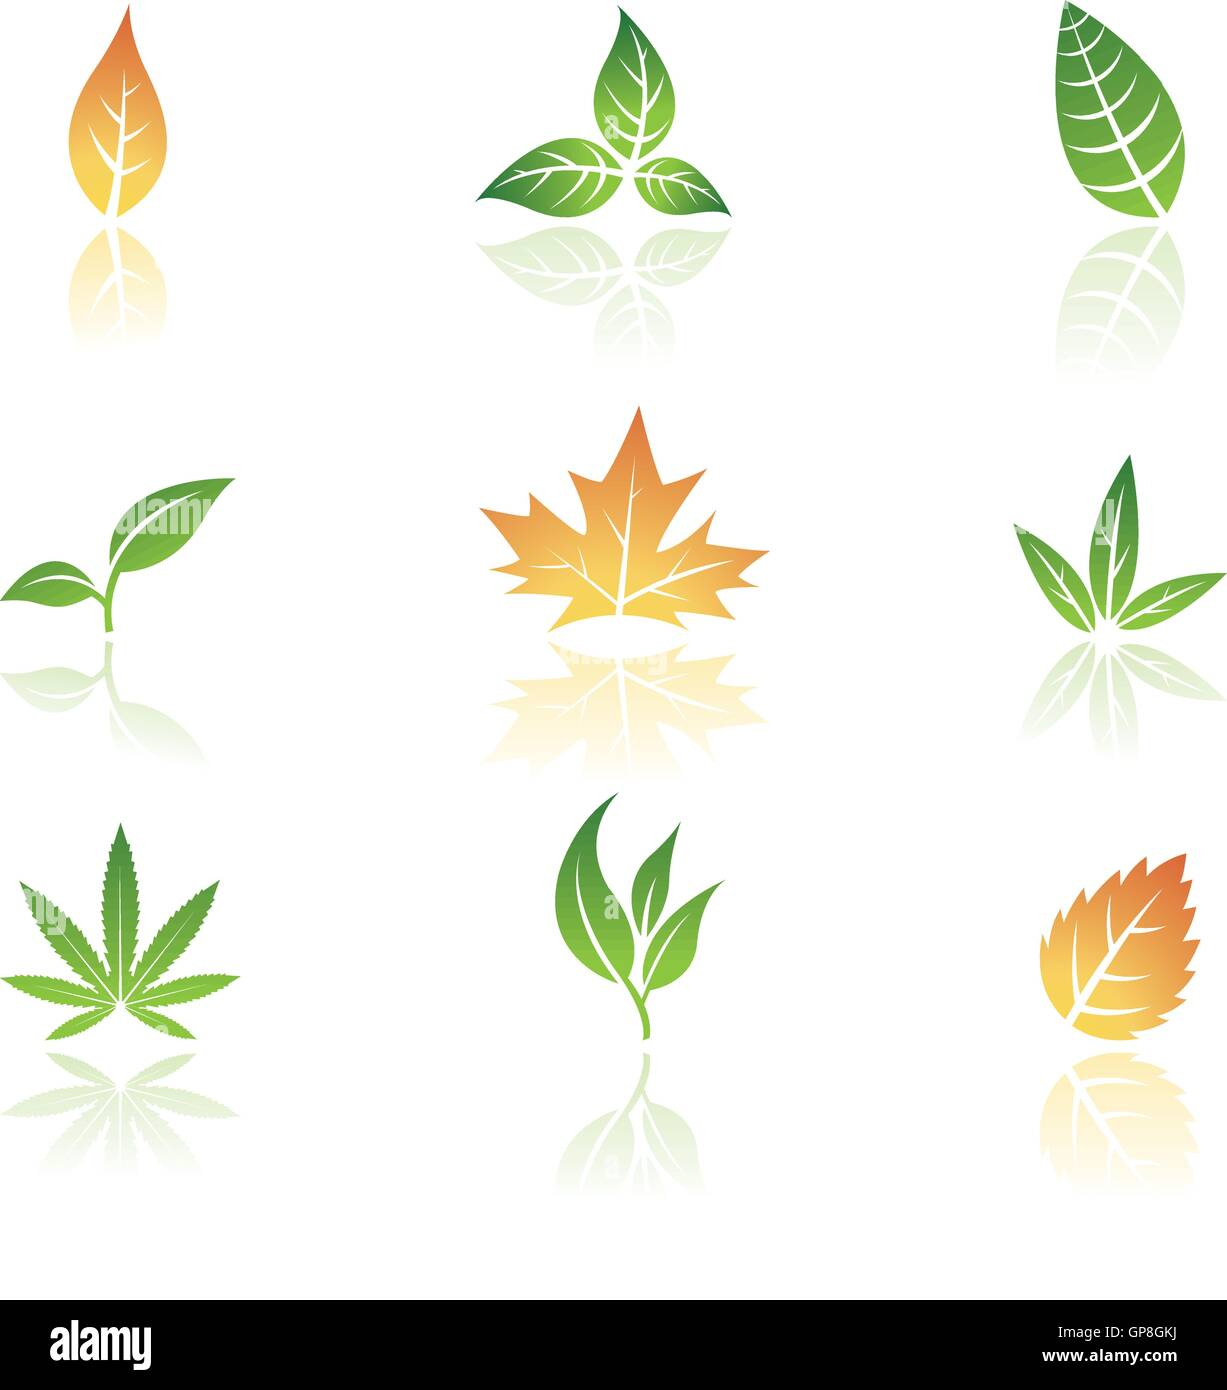 Leaves icons isolated on a white background - Stock Vector